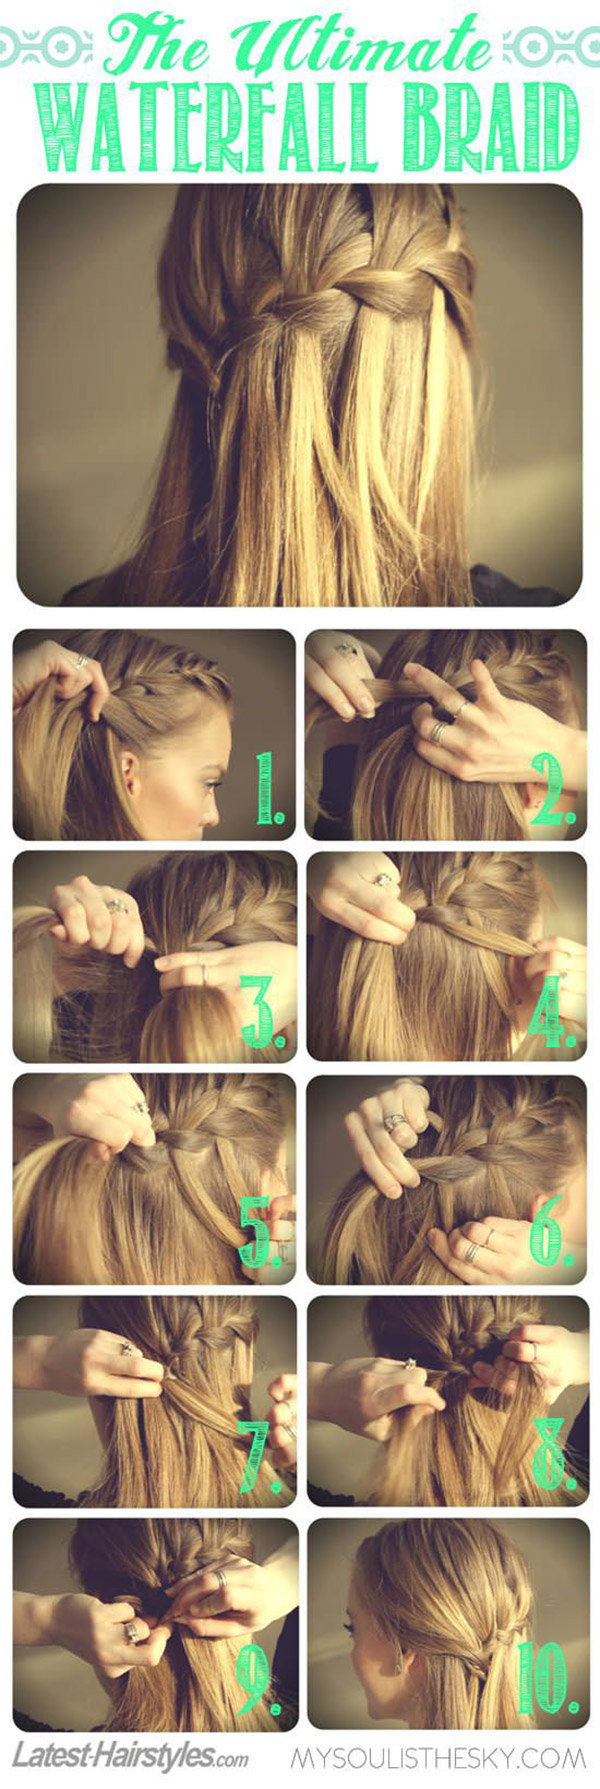 Marvelous 10 Beautiful Diy Hairstyles To Wear To A Wedding Bridalguide Short Hairstyles For Black Women Fulllsitofus